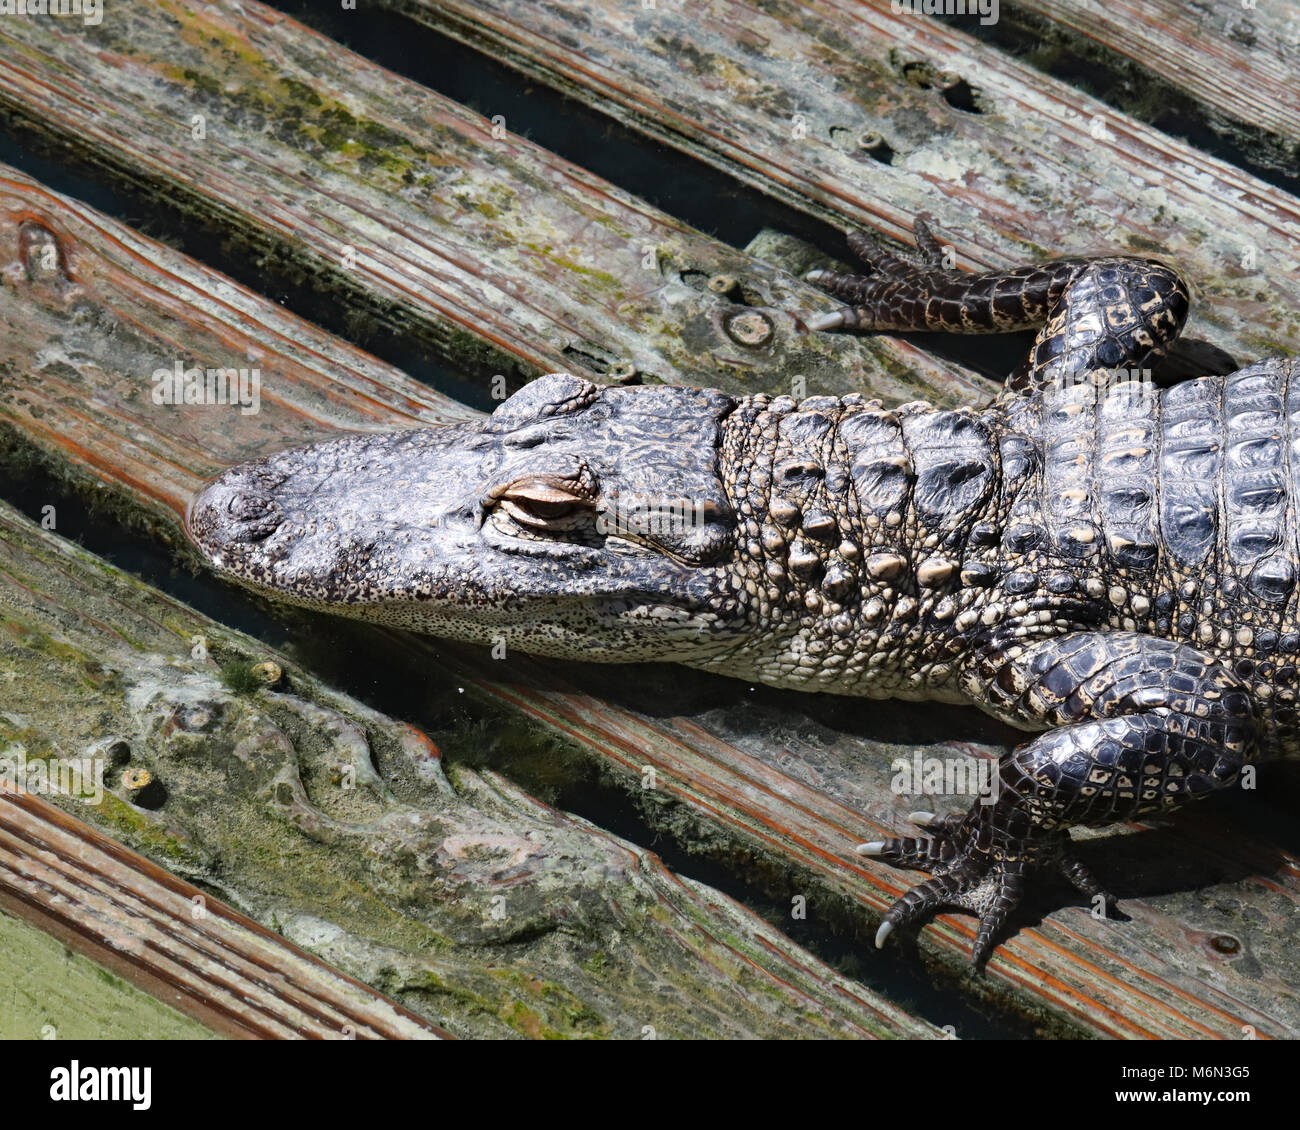 Alligator resting on wooden deck at Gatorland in Orlando, Florida - Stock Image